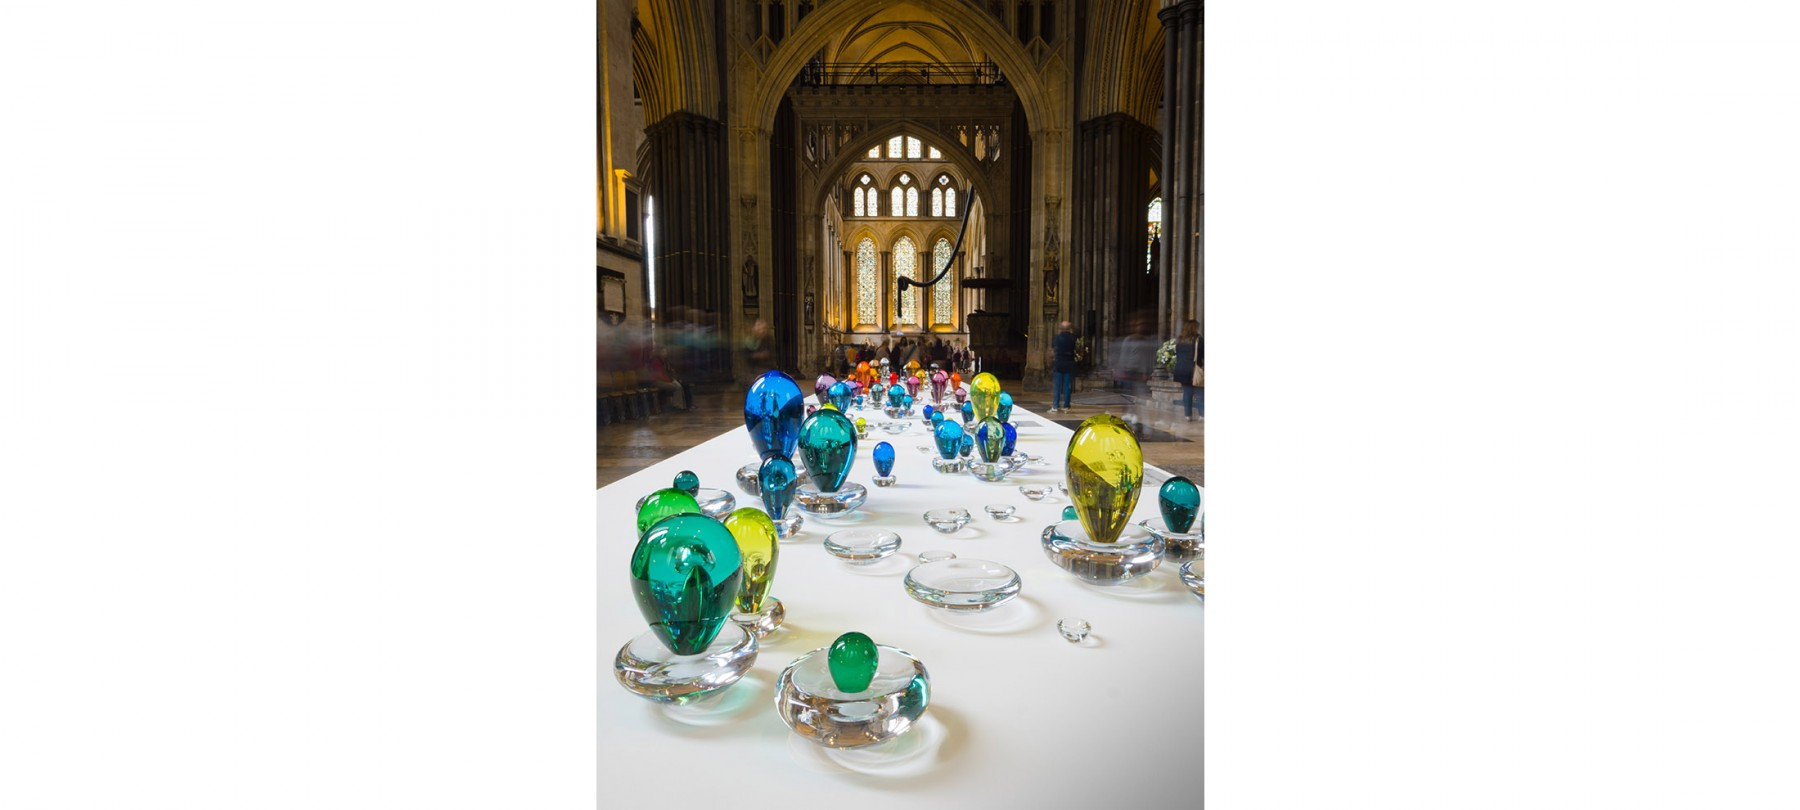 Louis_Thompson_Sailed_on_a_river_crystal_light_into_a_sea_of_dew_2016_Salisbury_Cathedral_photoby_Ash_Mills_01